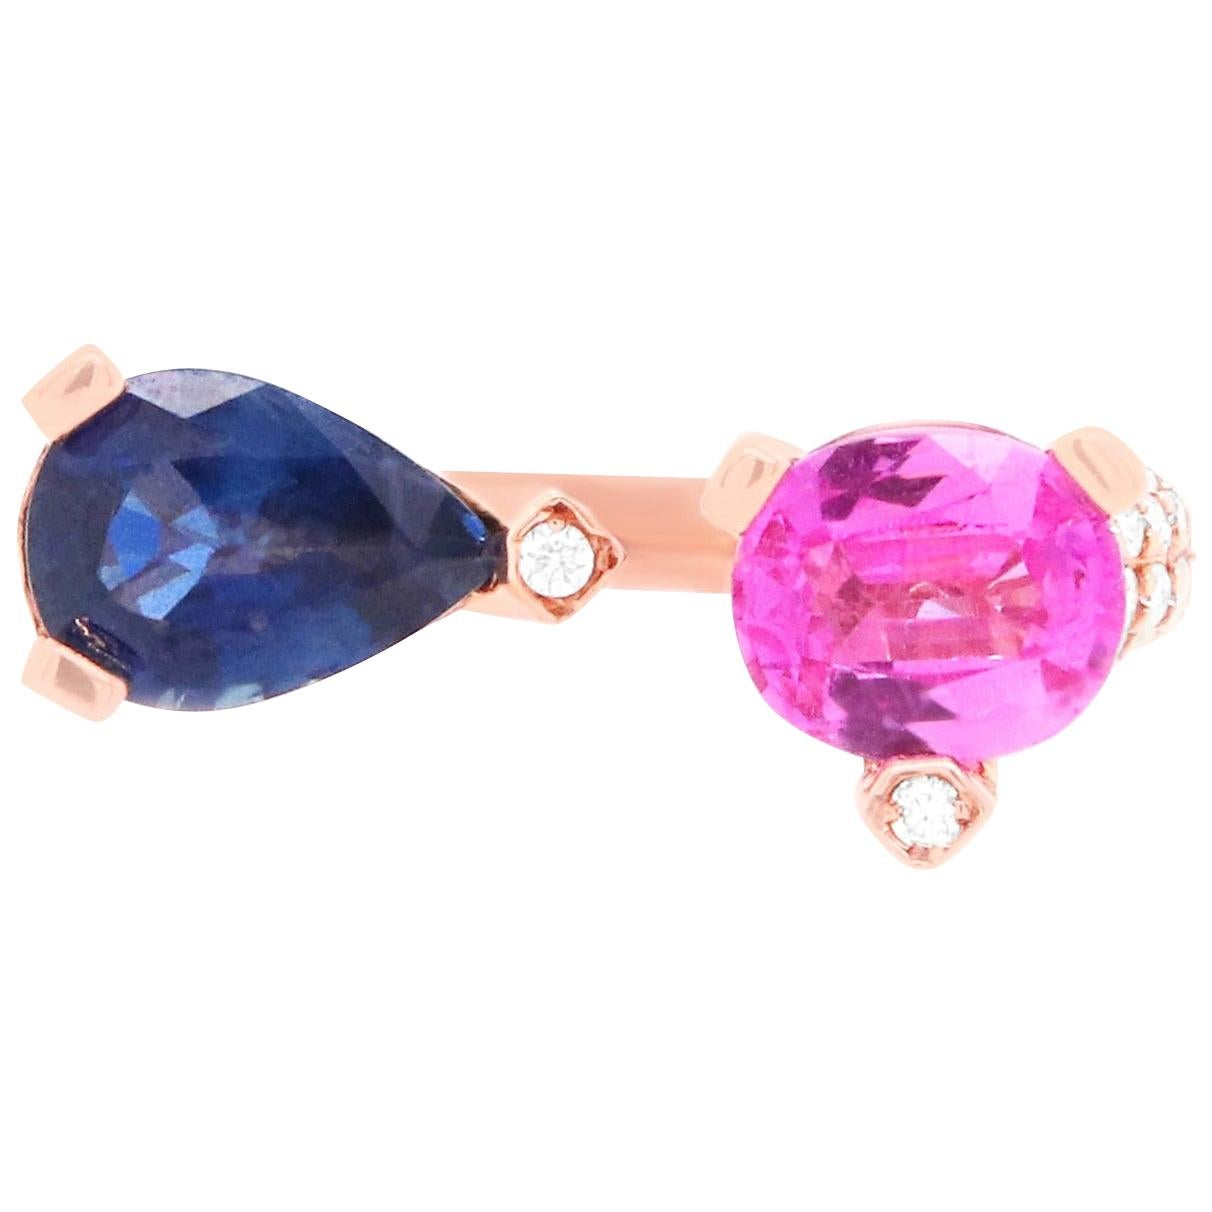 1.06 Carat Two-Stone Pink Sapphire, Blue Sapphire, and Diamond Ring